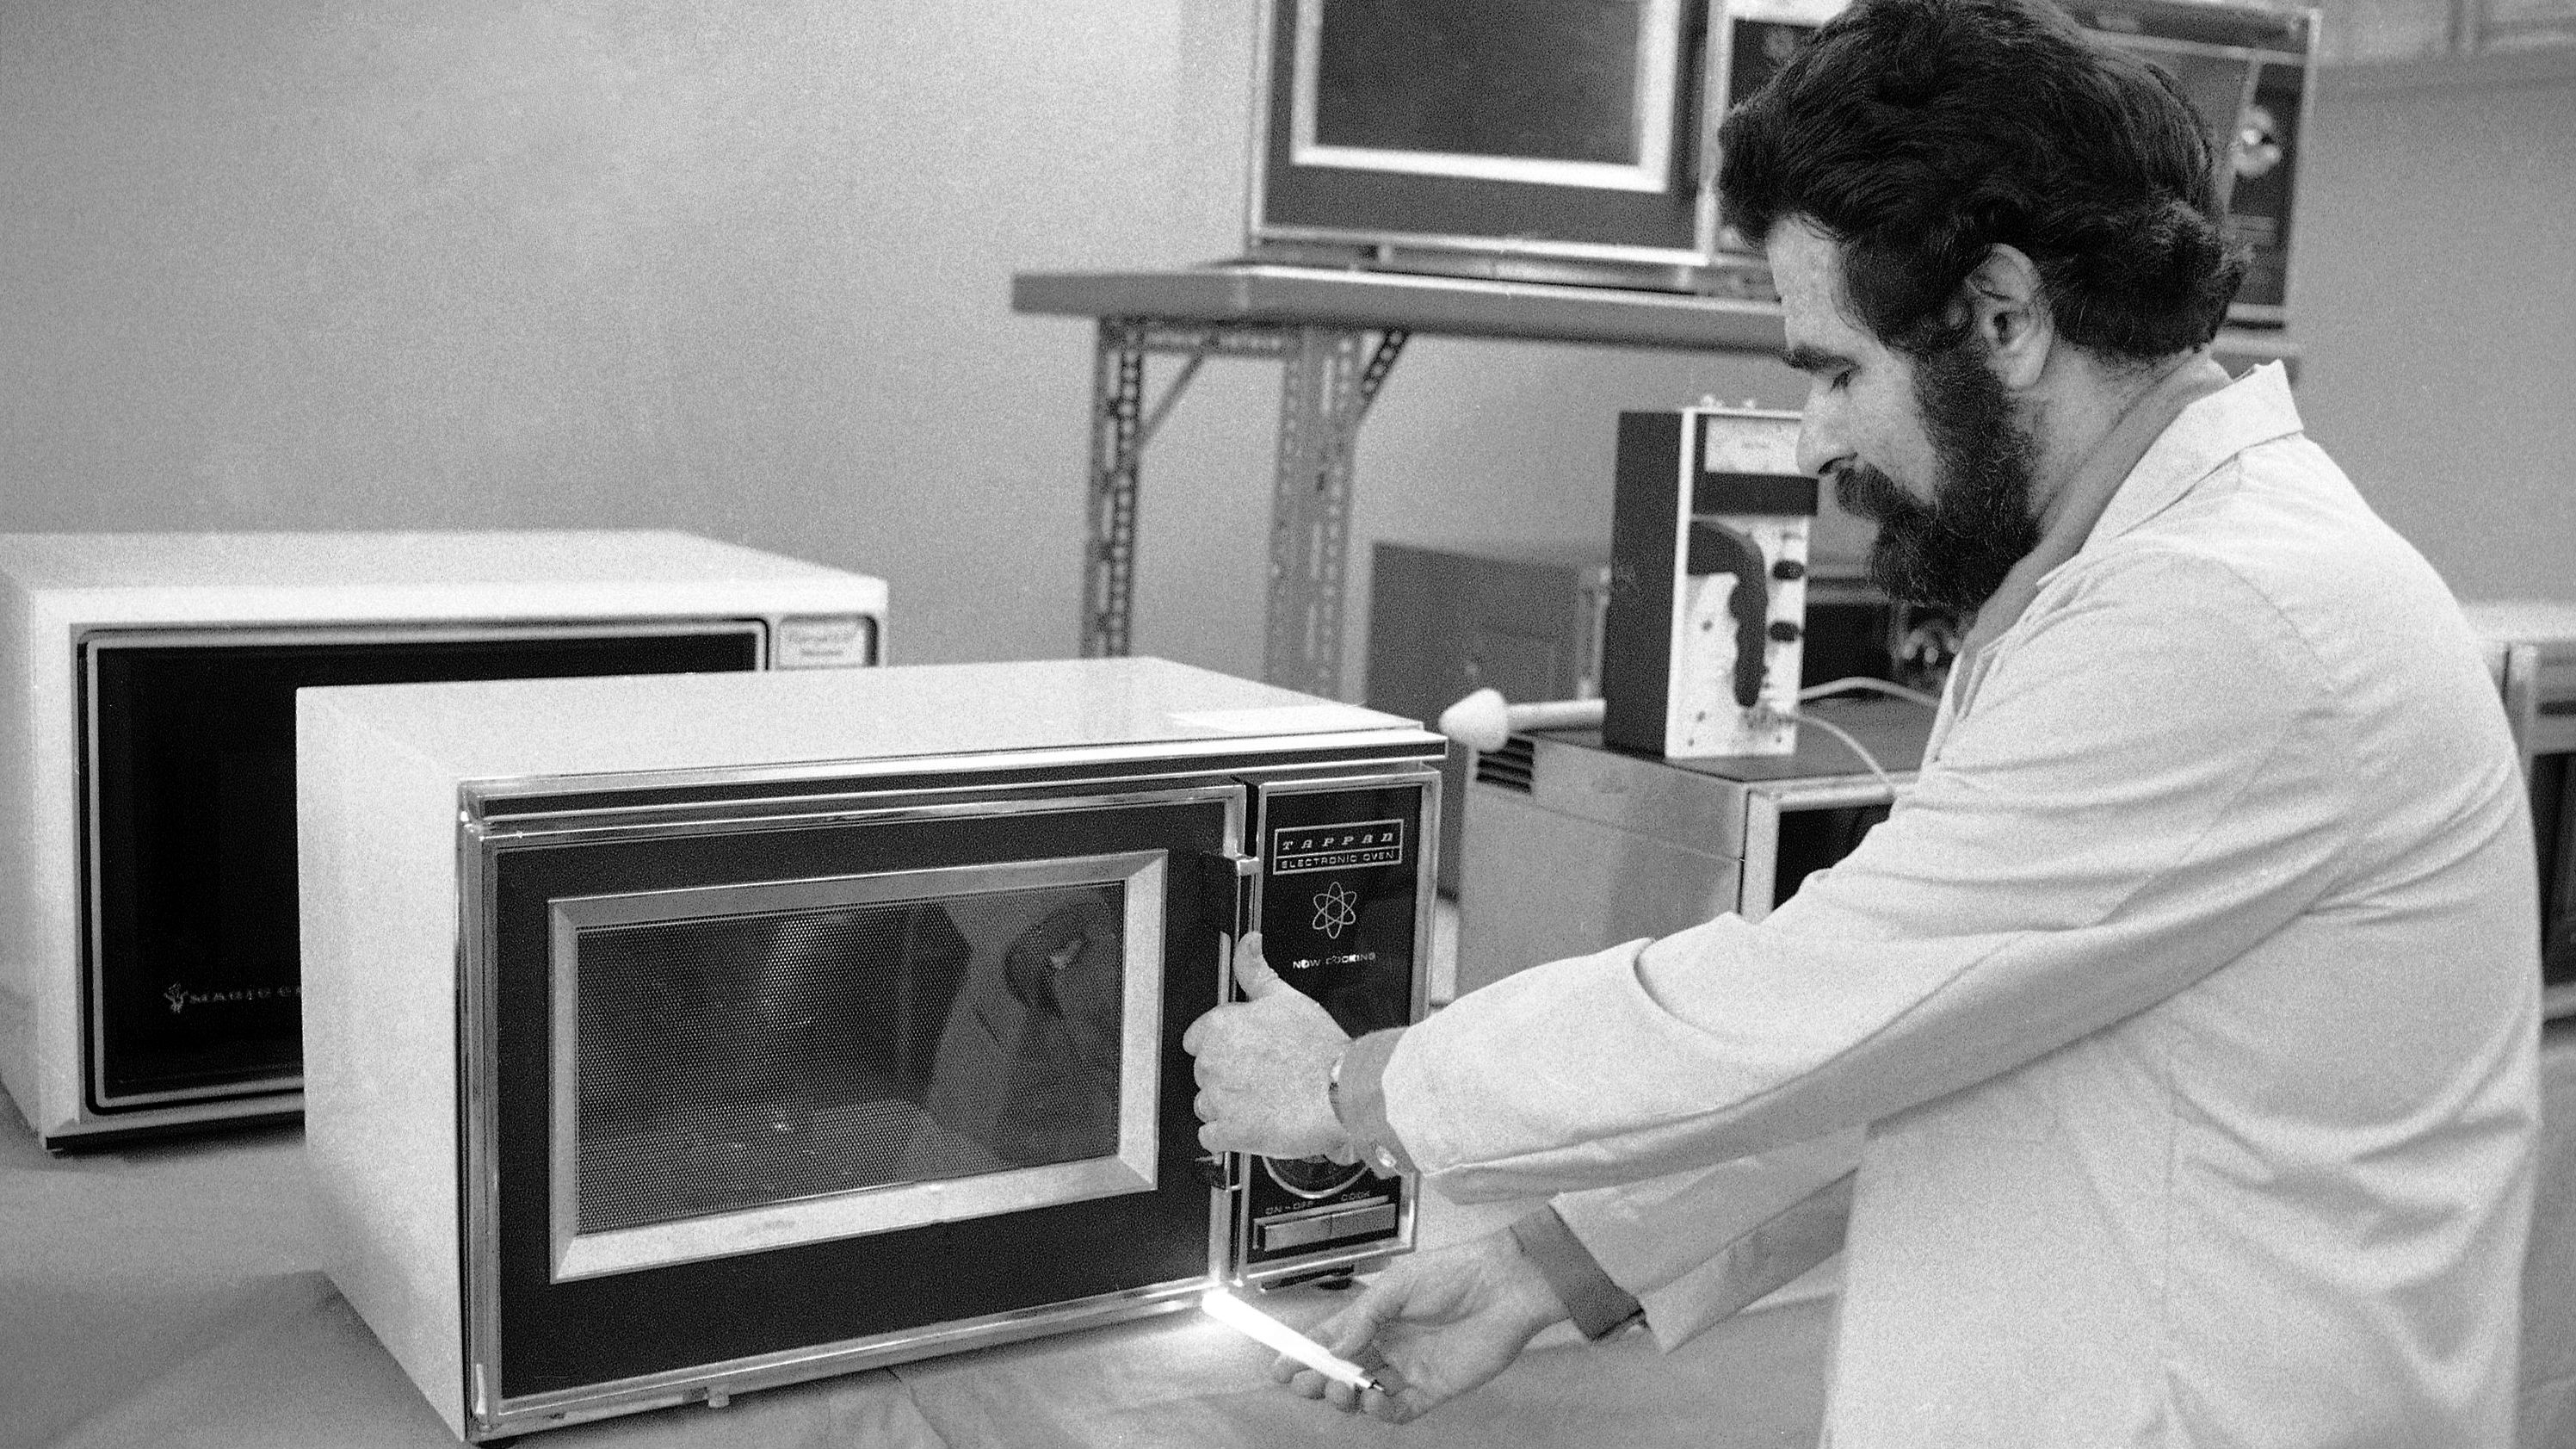 """Allan Eckhaus, consumers union engineer, holds a fluorescent tube near the slightly Ajar Door of a microwave oven, in a demonstration of radiation leakage in the ovens, in Mount Vernon, New York on March 7, 1975. Consumer union released a statement the same day during that consumers should """"be cautious and stay away"""" from buying the ovens, citing evidence of measurable radiation leakage from the 15 most popular brands."""